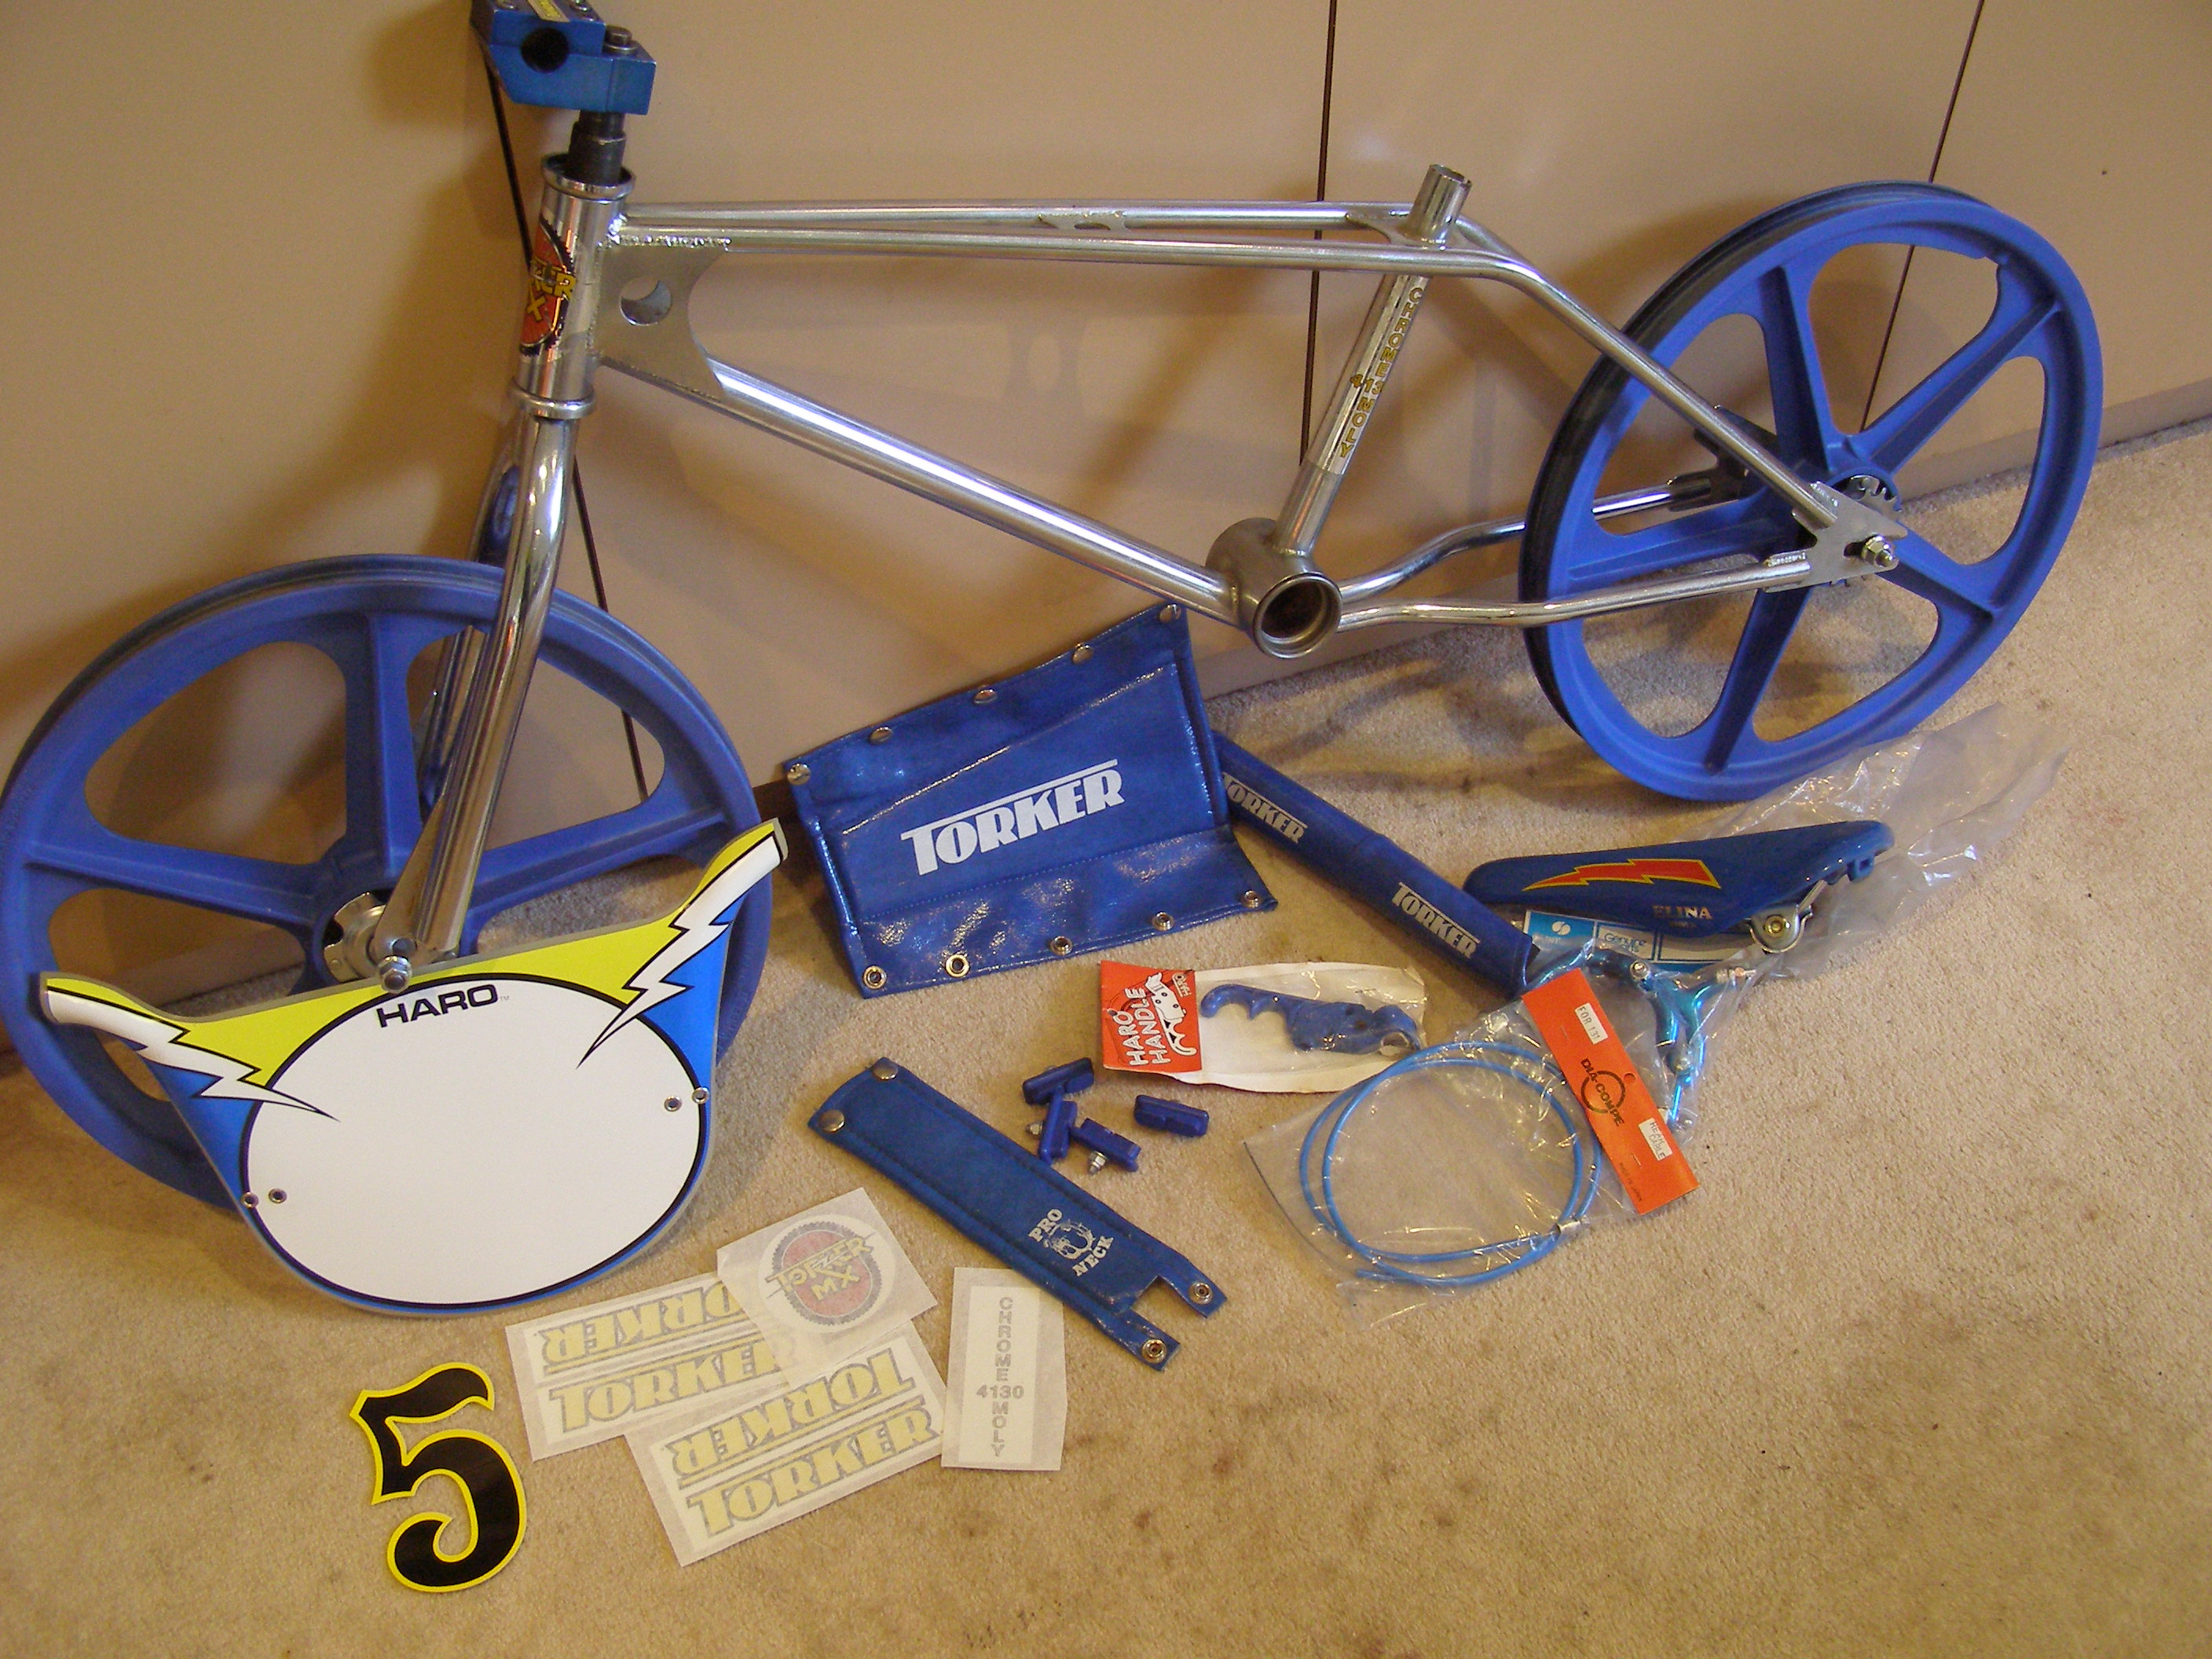 Torker Serial Number Meanings - Riding, Research